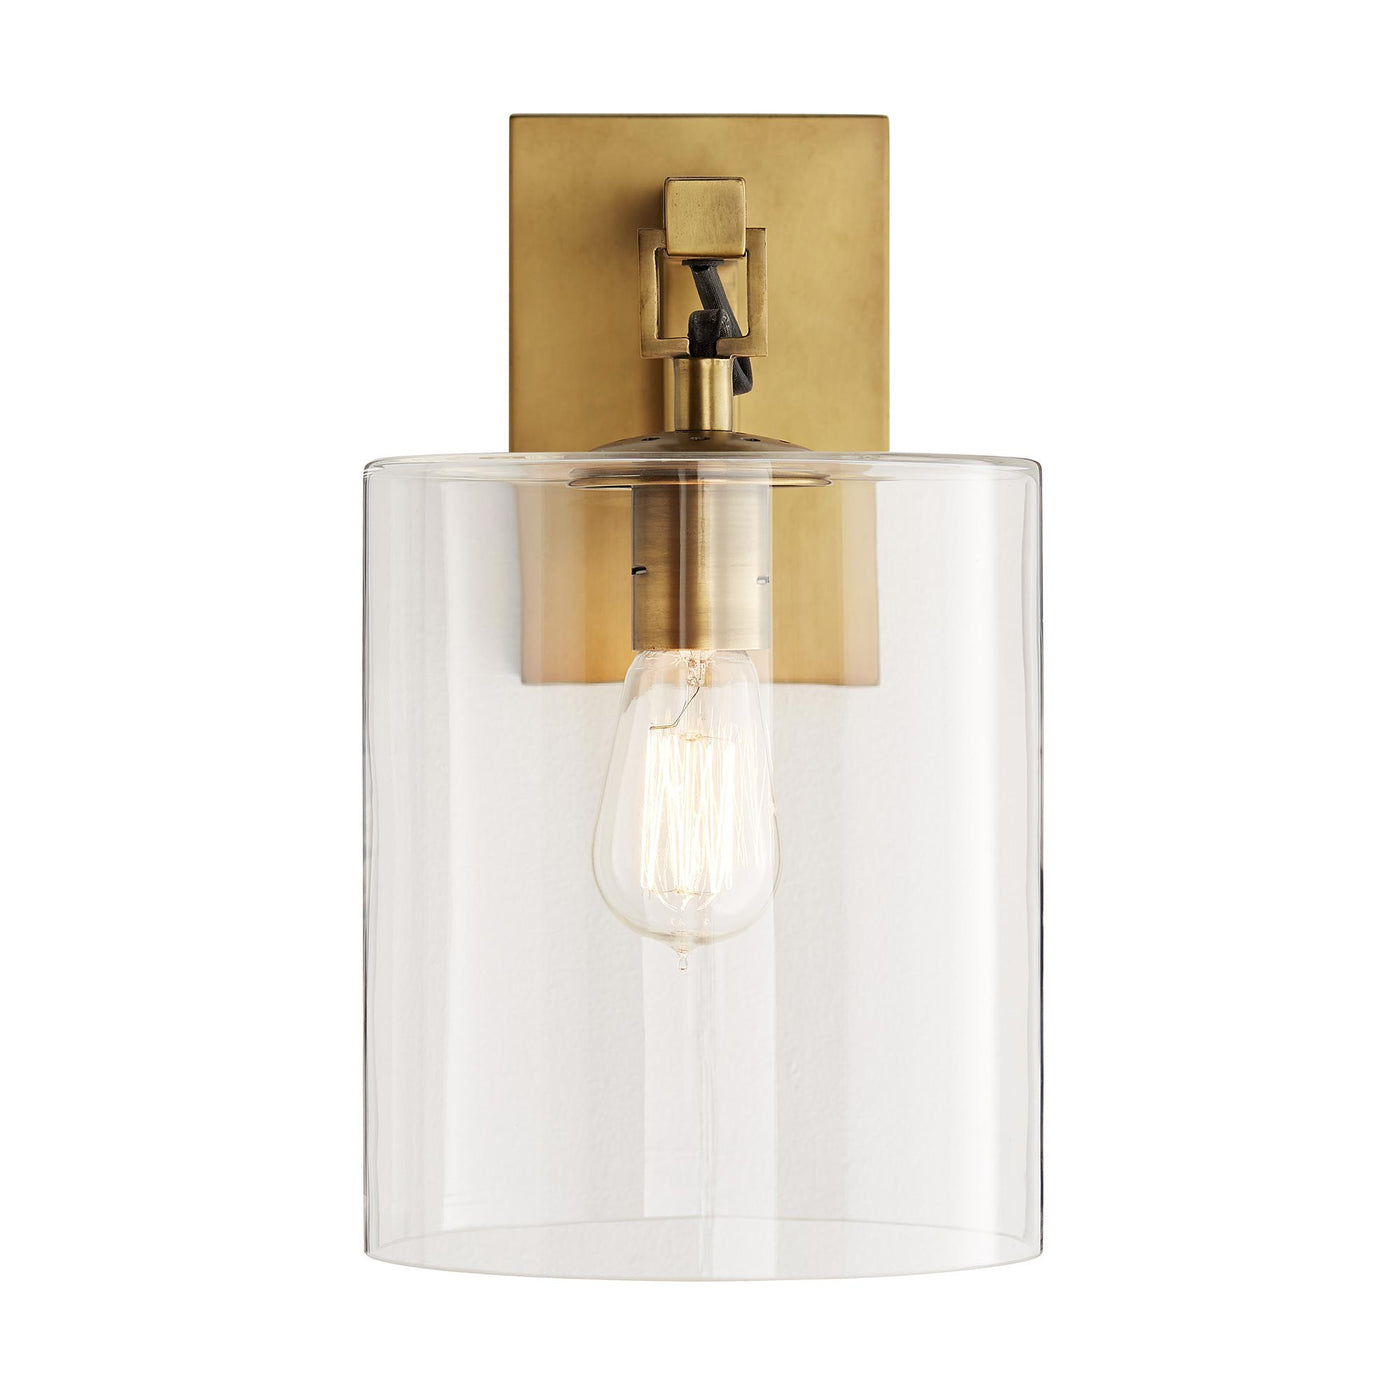 arteriors home parrish wall sconce antique brass illuminated